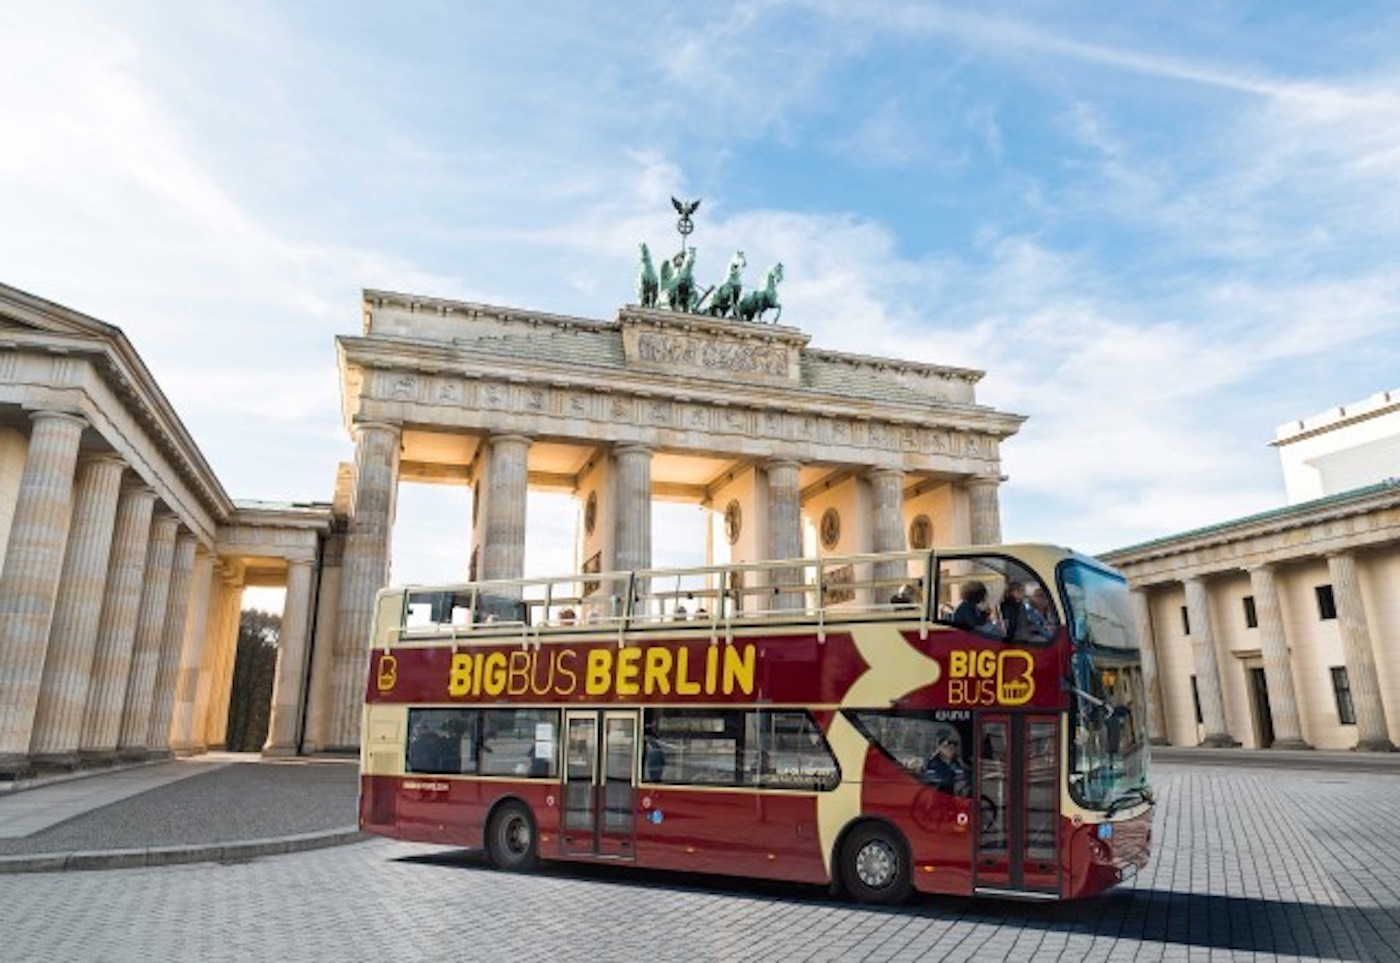 Big Bus Tours Berlin Has Arrived